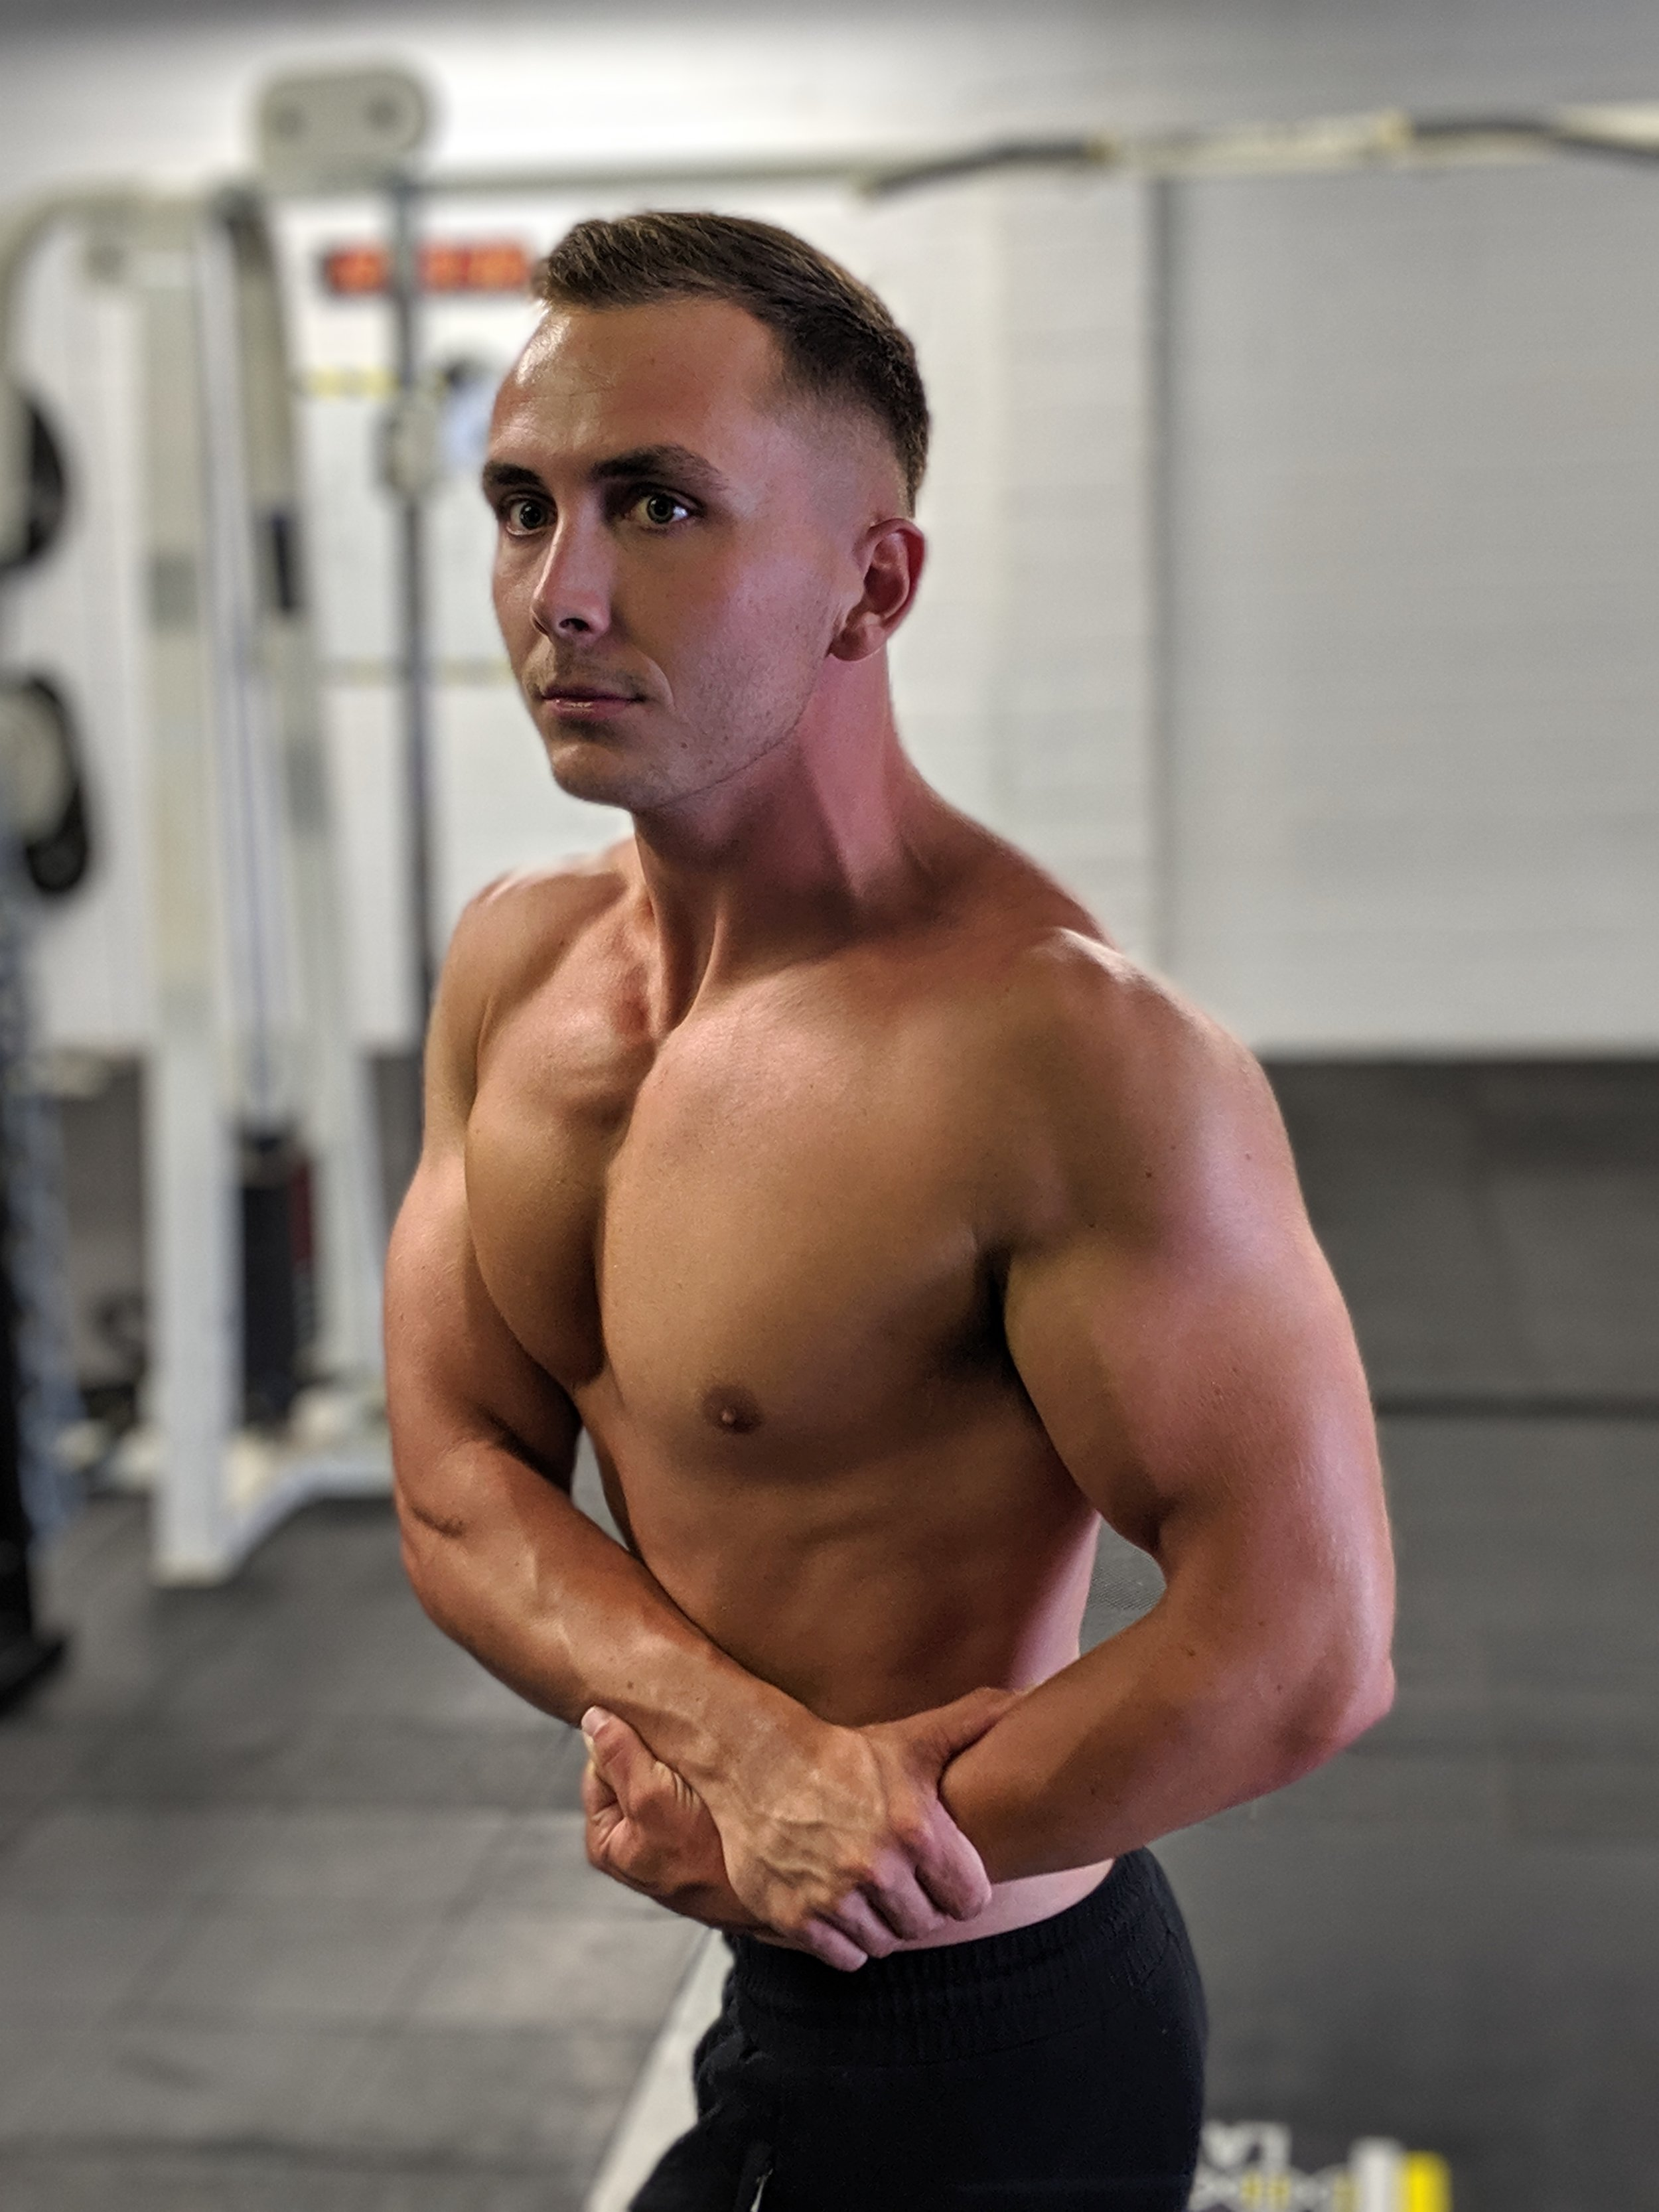 - My name is James and I am an Expert Personal Trainer and Online Coach.I help people get into the BEST SHAPES OF THEIR LIVES.Do YOU want to get into amazing shape?